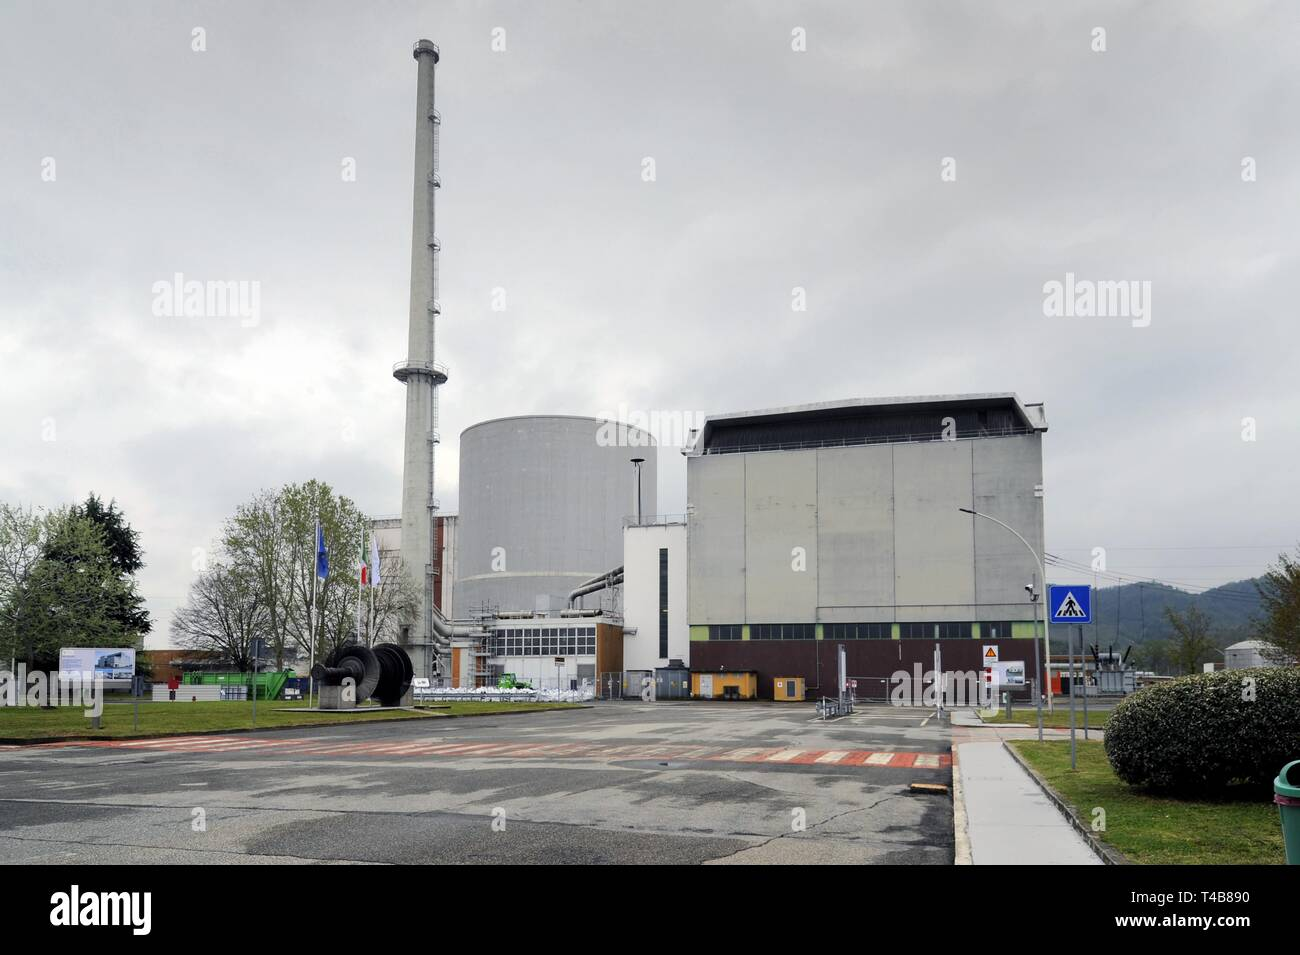 Trino Vercellese nuclear power station, in the process of deactivation by the company Sogin, responsible for decommissioning of Italian nuclear plants after the popular referendums of 1987 and 2011 - Stock Image